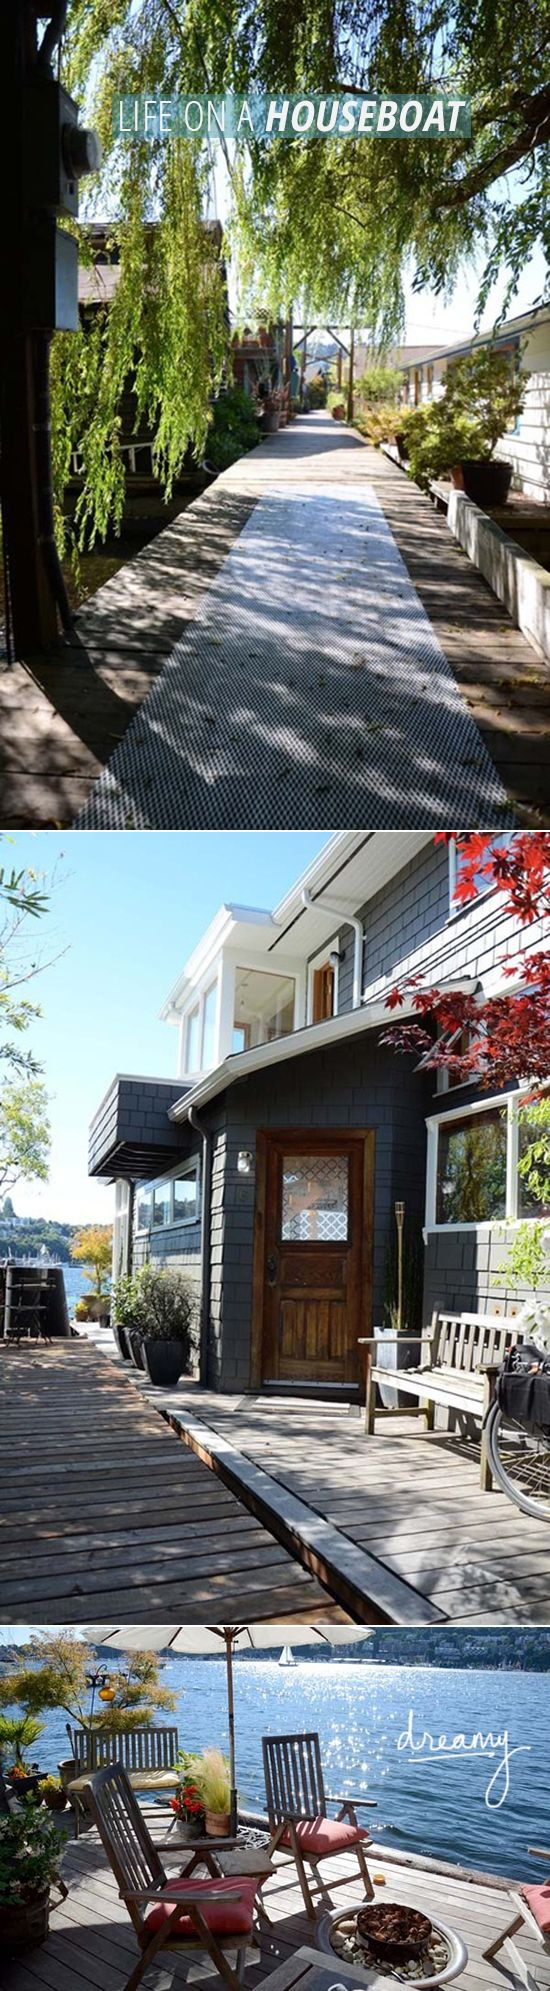 Free Houseboats To Good Home - Seattle houseboat outdoor living